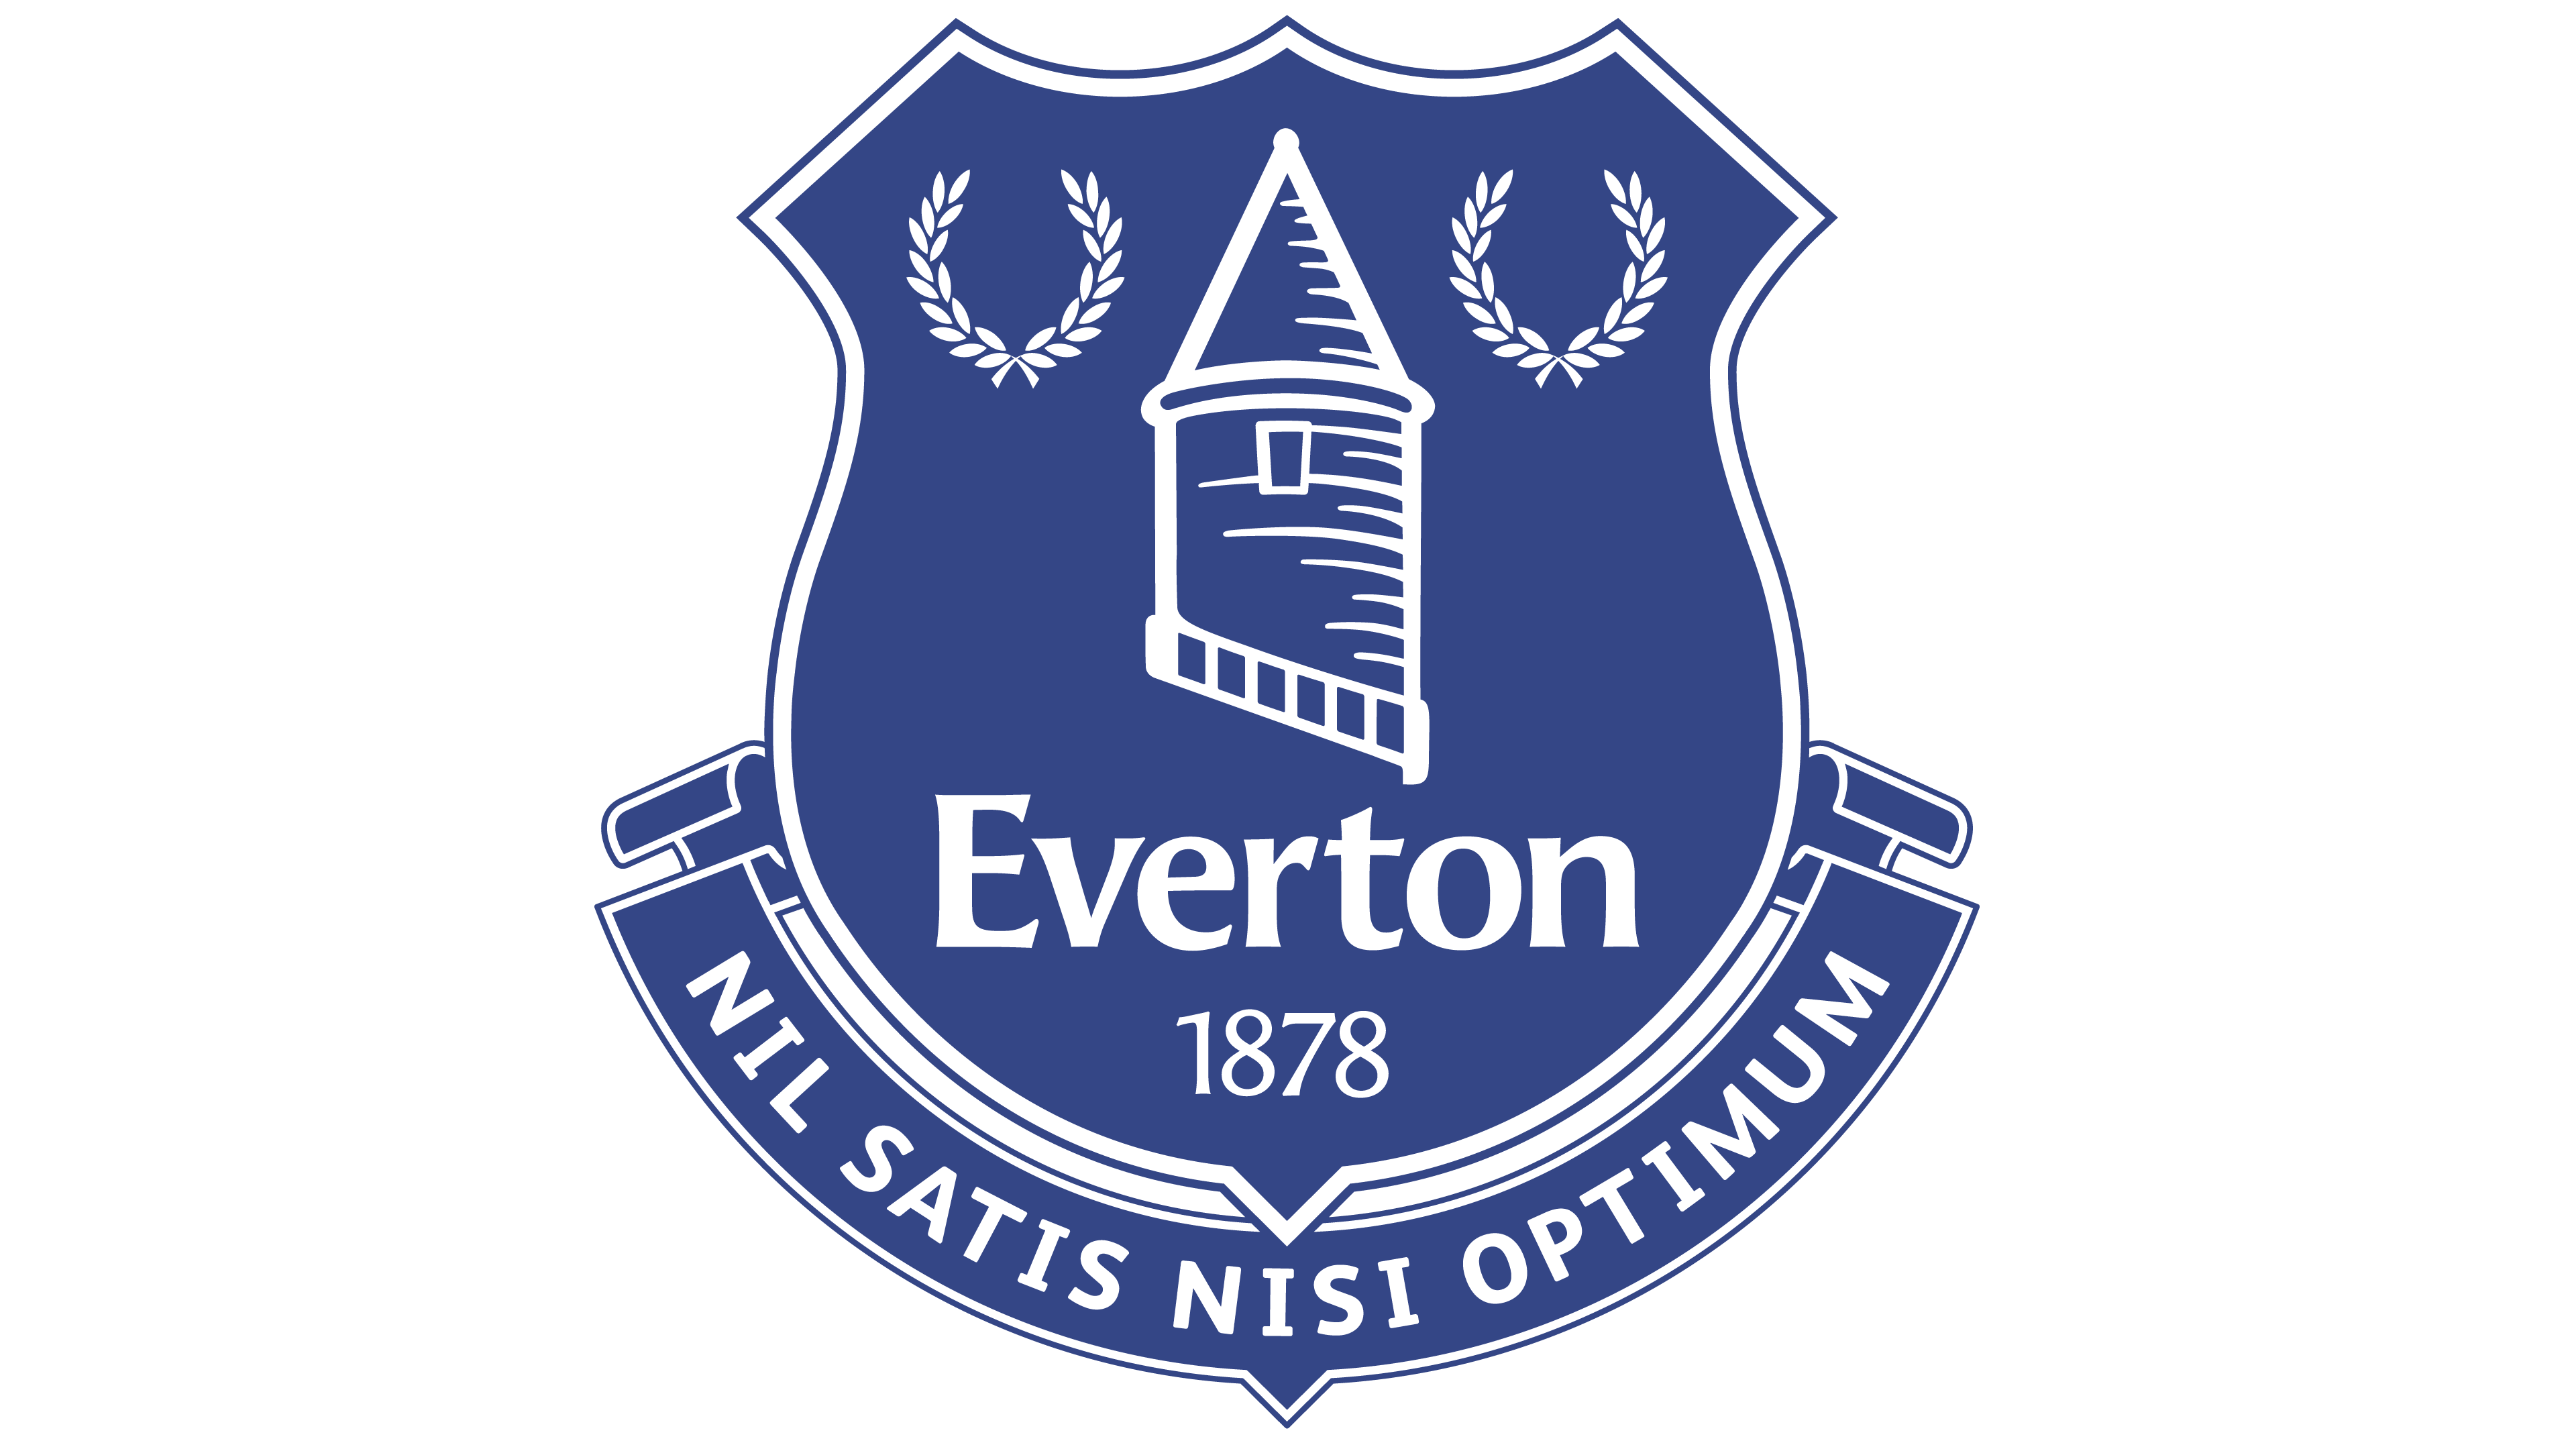 https://colabandconsult.co.uk/wp-content/uploads/2020/05/Everton-logo.png